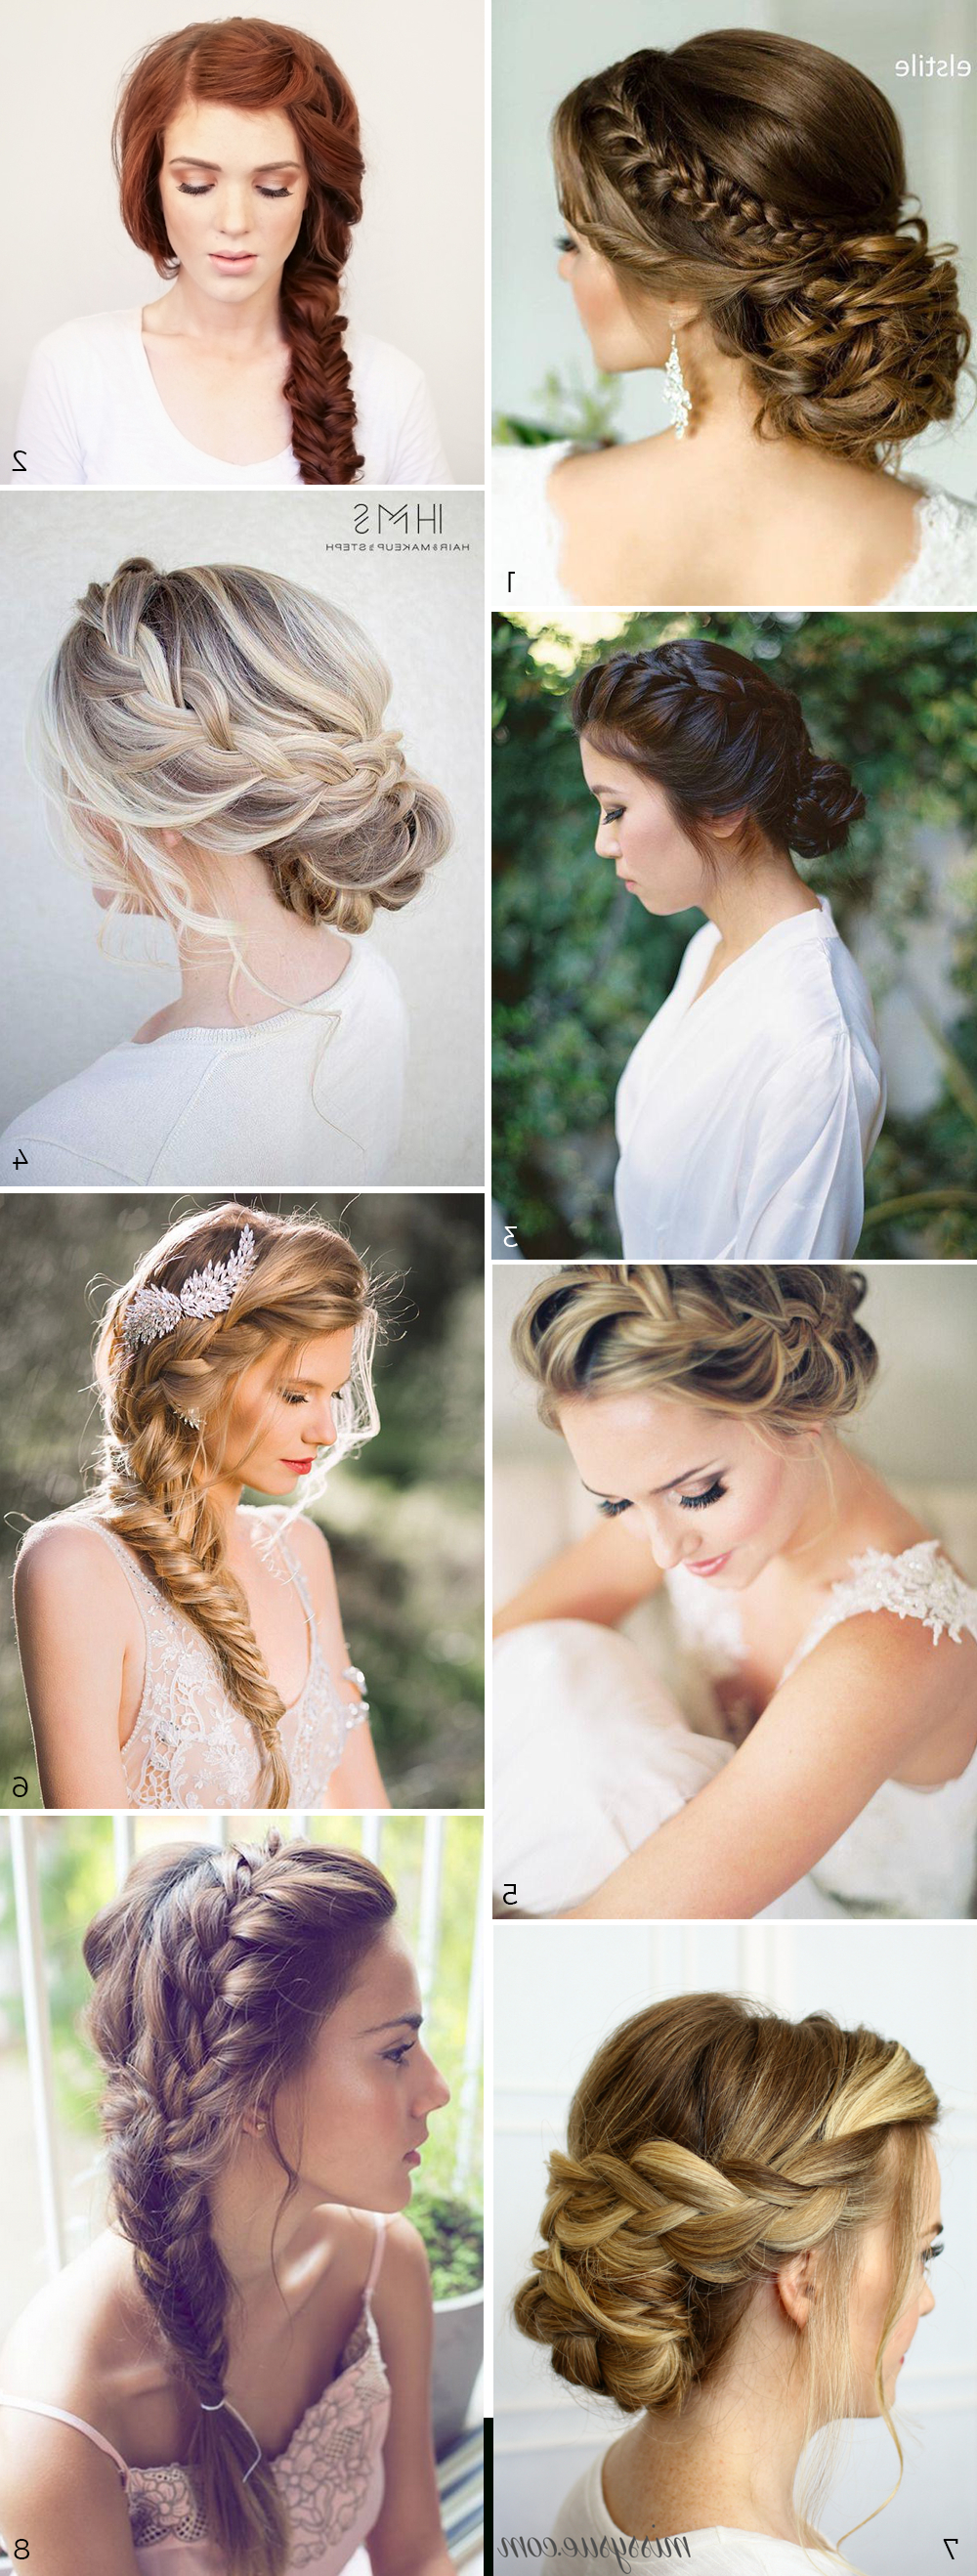 Hairstyles For The In Most Popular Tender Bridal Hairstyles With A Veil (View 5 of 20)